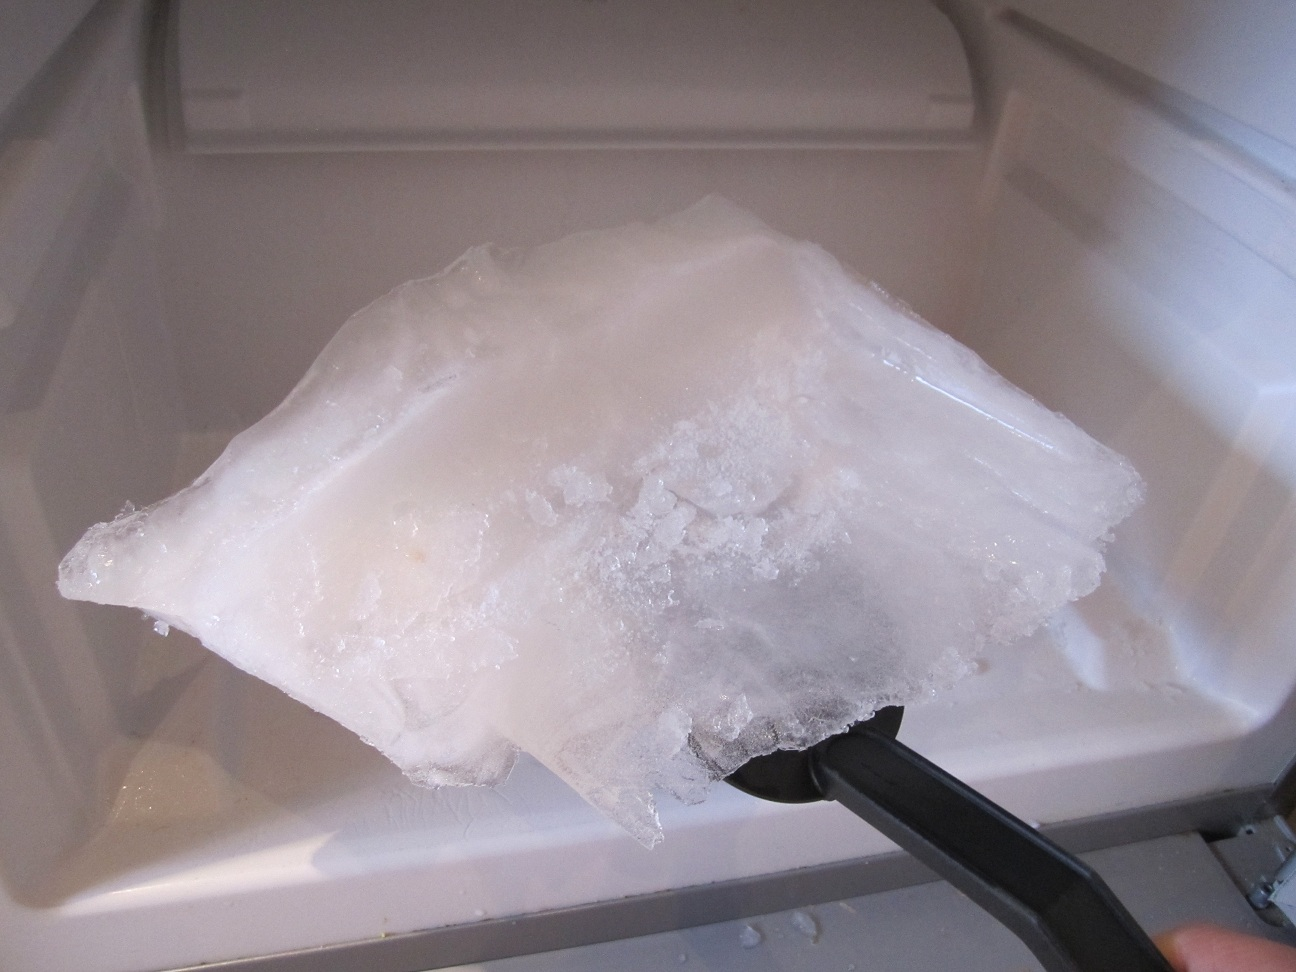 Whoever bought our fridge has no need to purchase ice for cocktails no more!